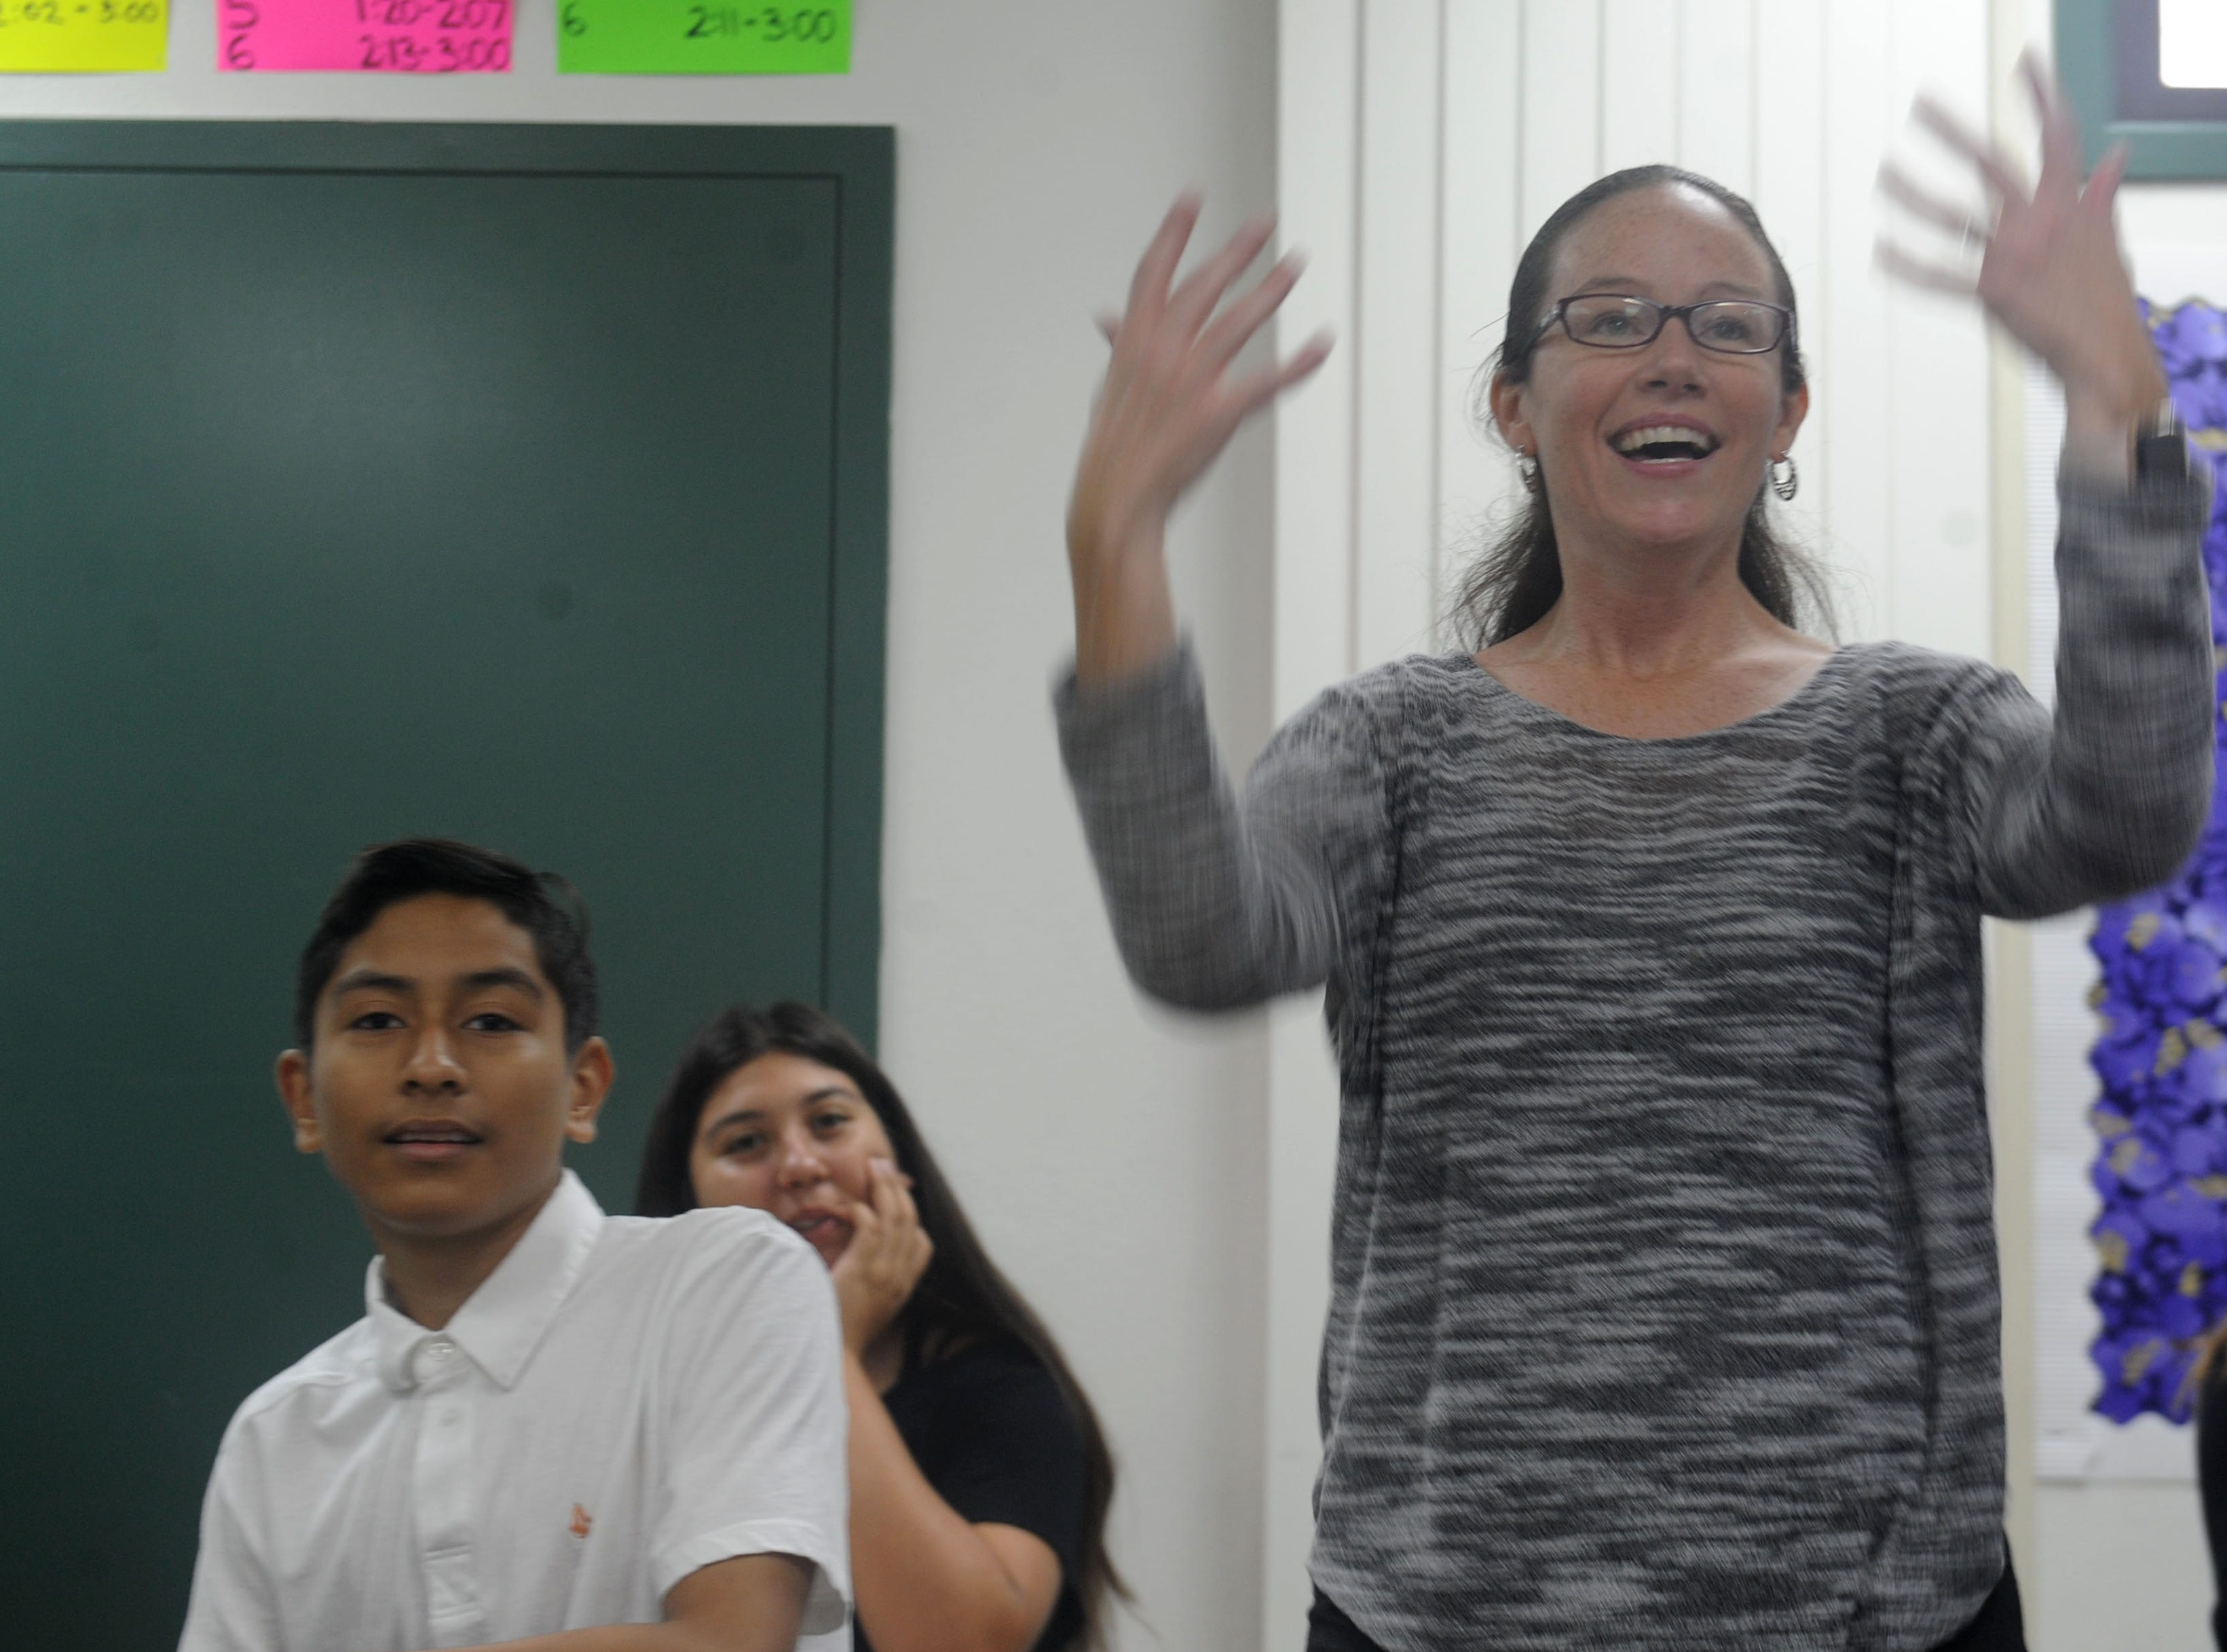 Danielle Bowler, who is deaf and teaches American Sign Language at Moorpark High School, wanted to teach at the high school level. She got the opportunity when Moorpark decided to add ASL classes this year.